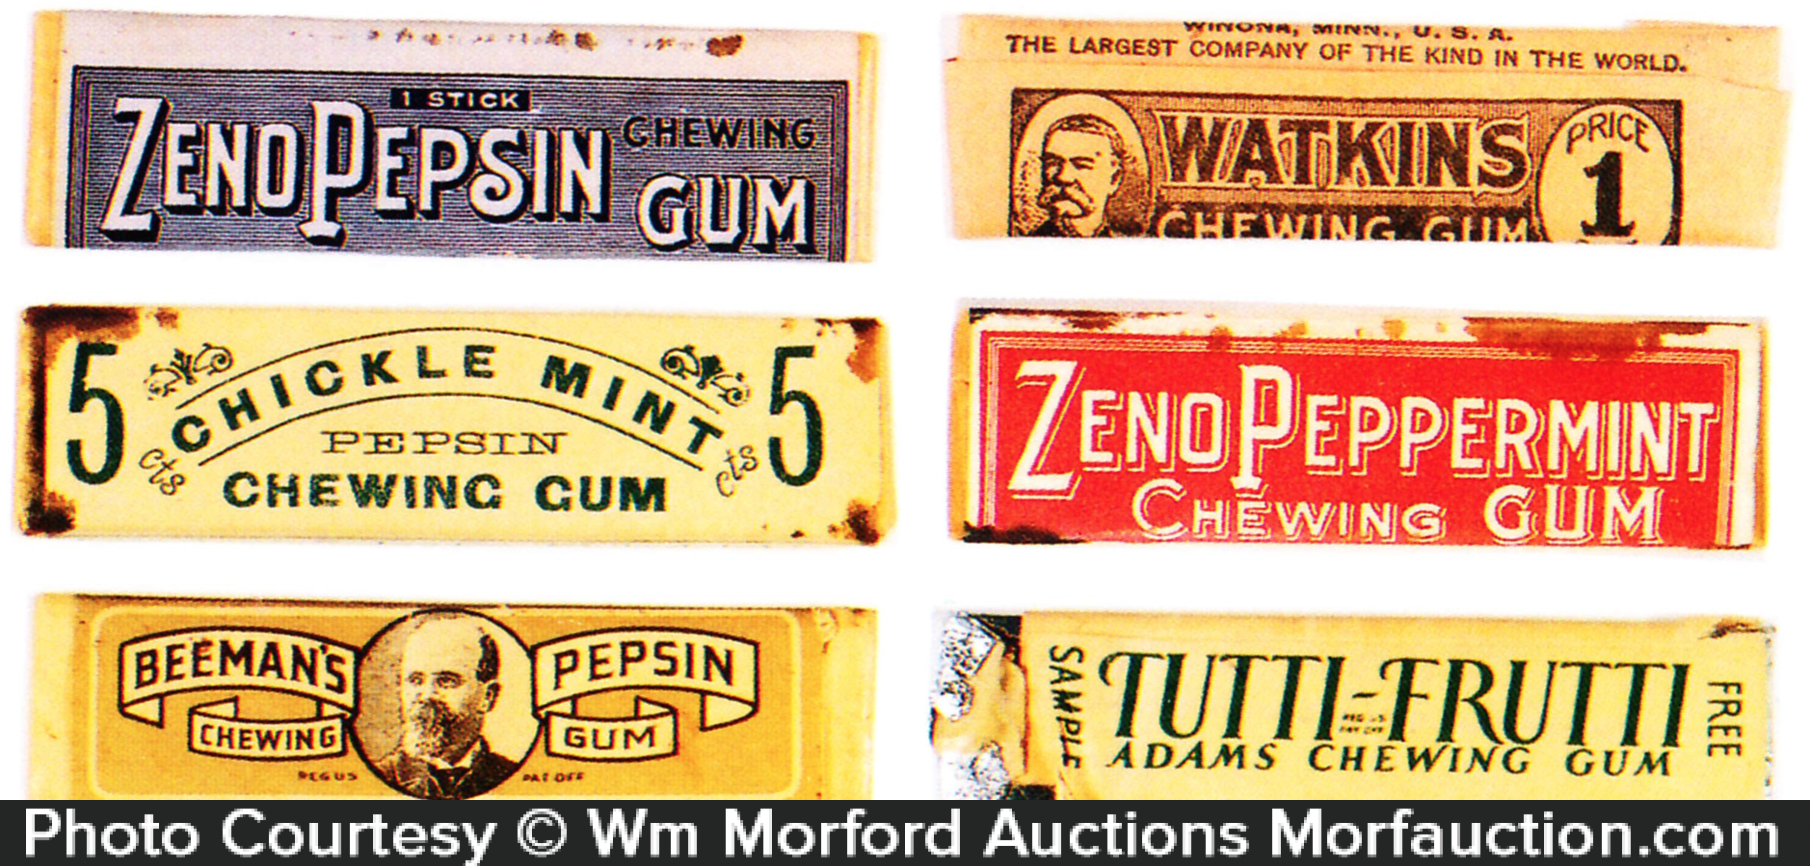 Vintage Chewing Gum Packs